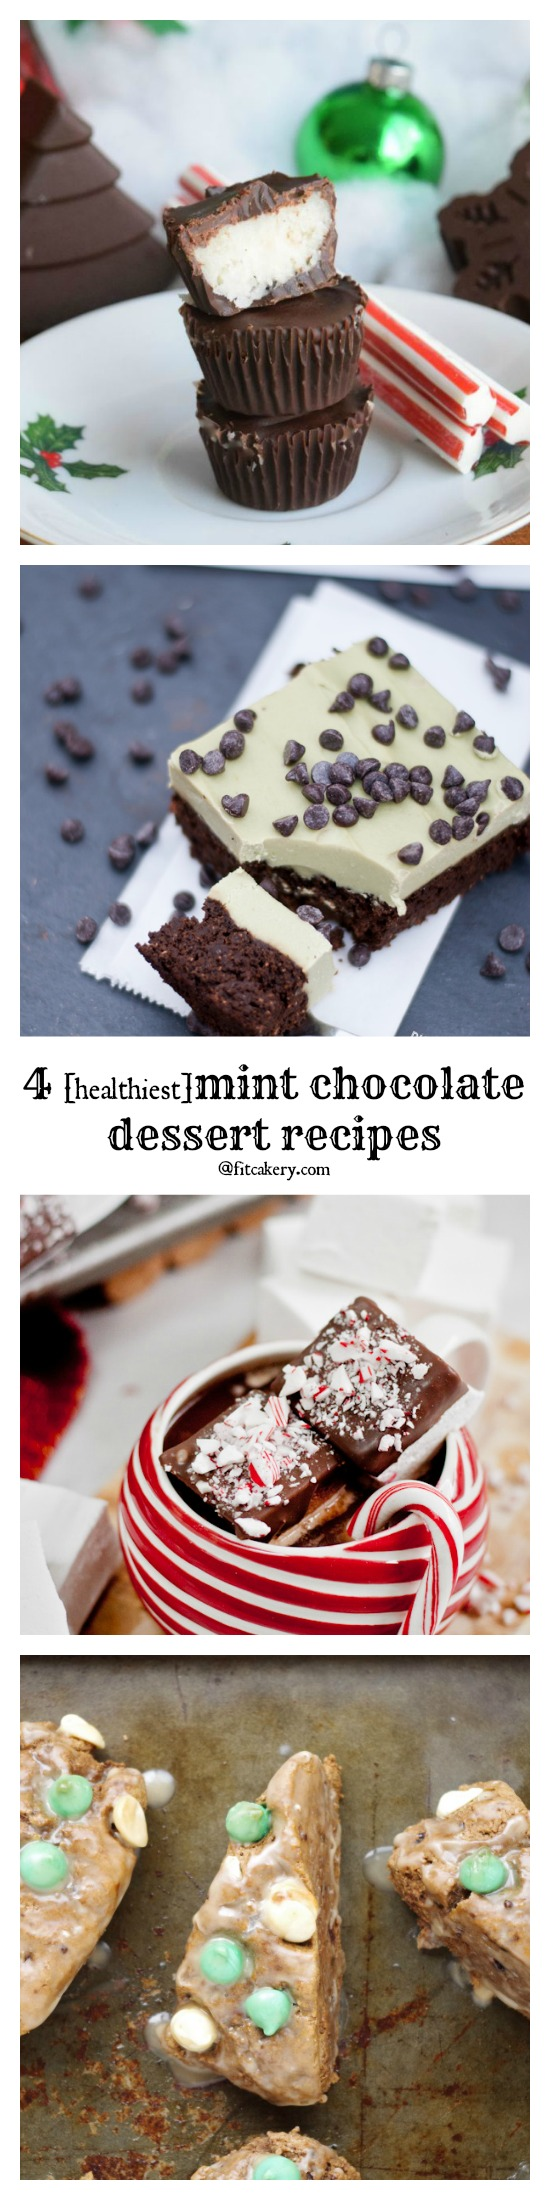 4 of the best ever mint chocolate dessert recipes - because they're secretly healthy! #healthybaking